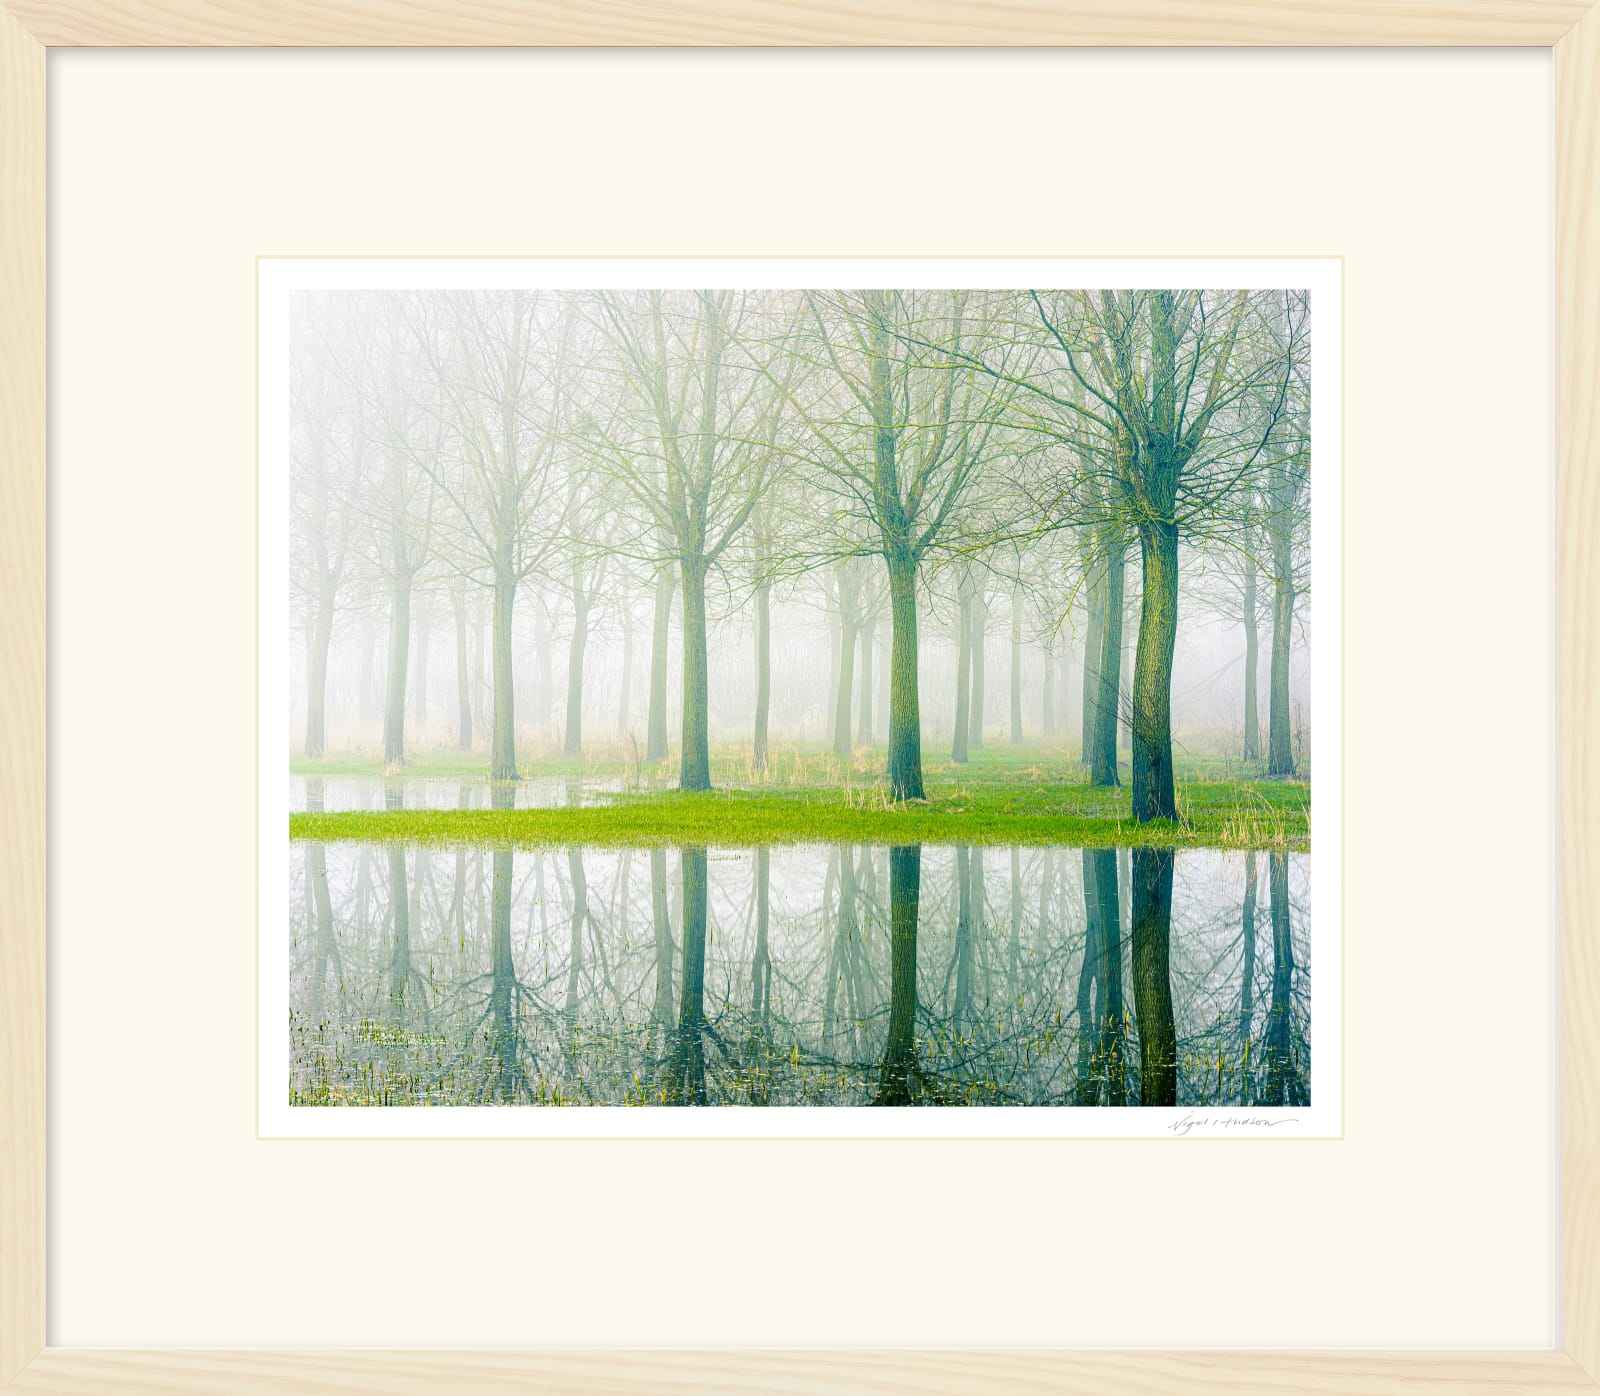 'ABOVE AND BELOW' Archival Pigment Print on Platinum Etching Fine Art Paper. Framed in an Limed Ash Cushion Frame and protected with crystal clear Water White Glass. Available in an edition of 3 in three sizes. Prices from £245.00 including first class courier delivery within five working days.